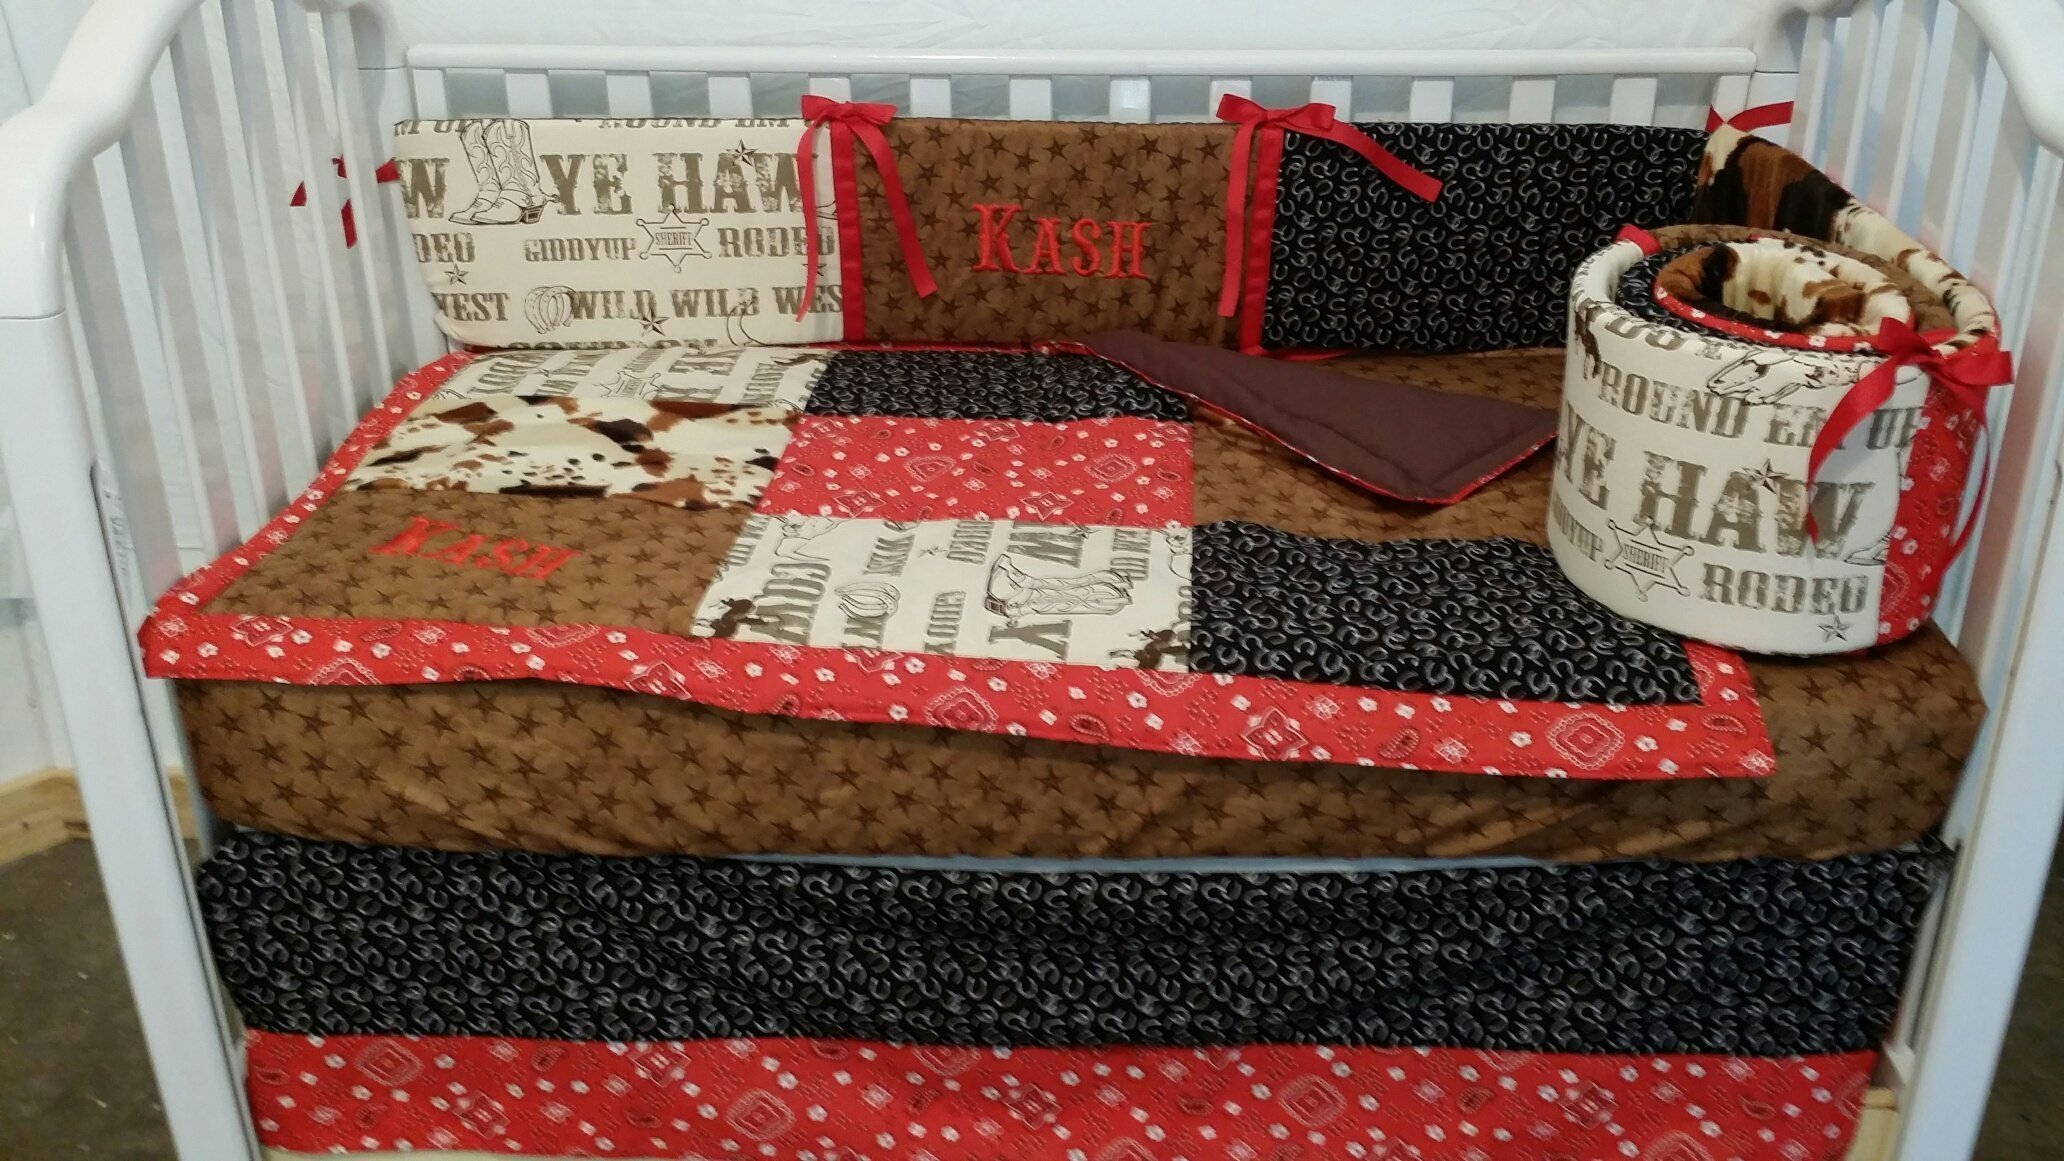 3 piece Rodeo, Western, Cowboy Crib Baby Bedding set, Handmade and custom to order, Embroidered, Monogrammed, Personalized Fitted crib sheet sold separately, Quilt, Bumper, Bed skirt,